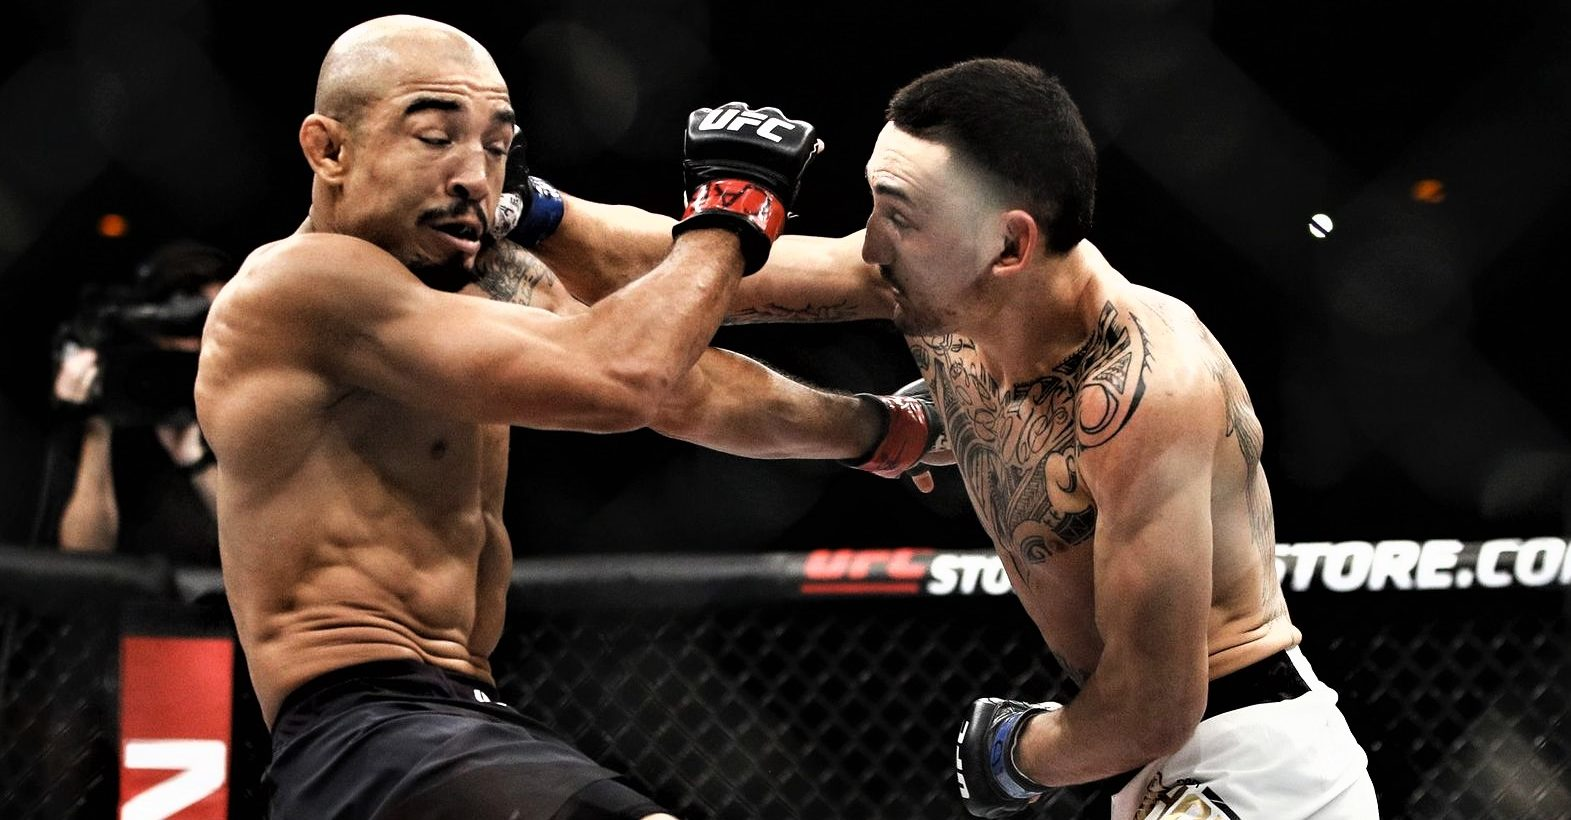 Jose Aldo Max Holloway UFC